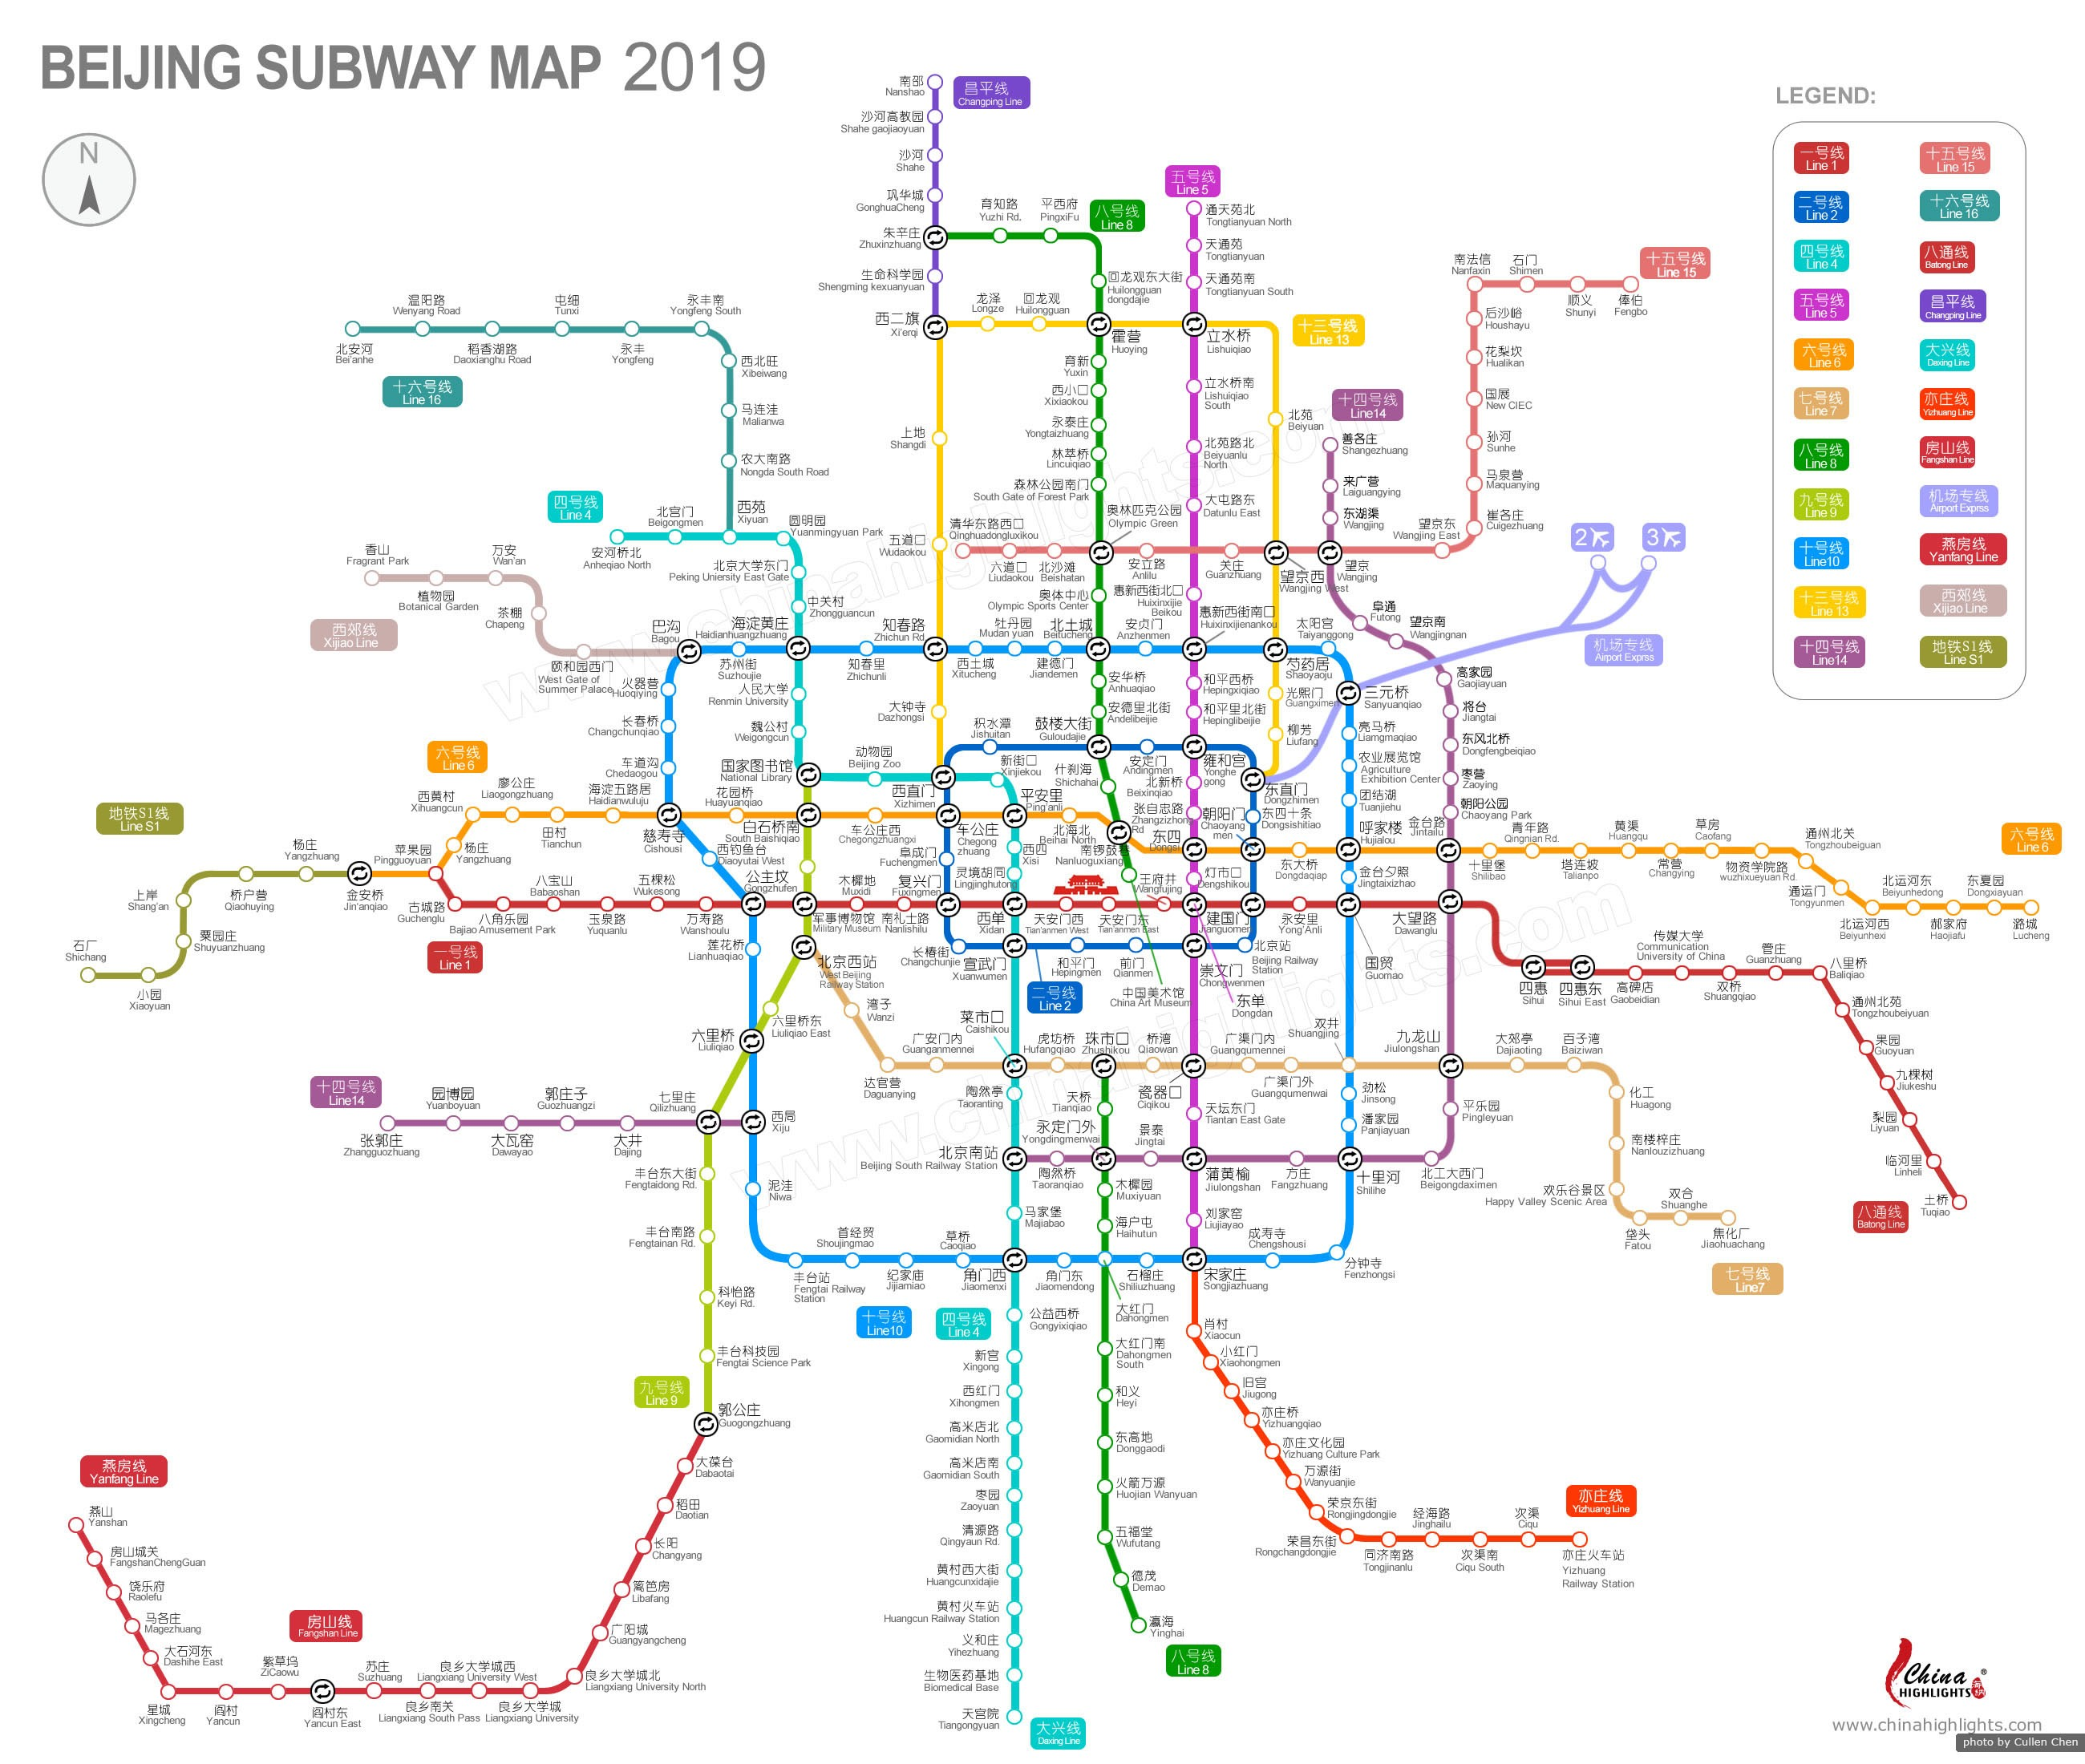 Subway Map Holiday.Beijing Subway Map 2019 Latest Maps Of Beijing Subway And Stations